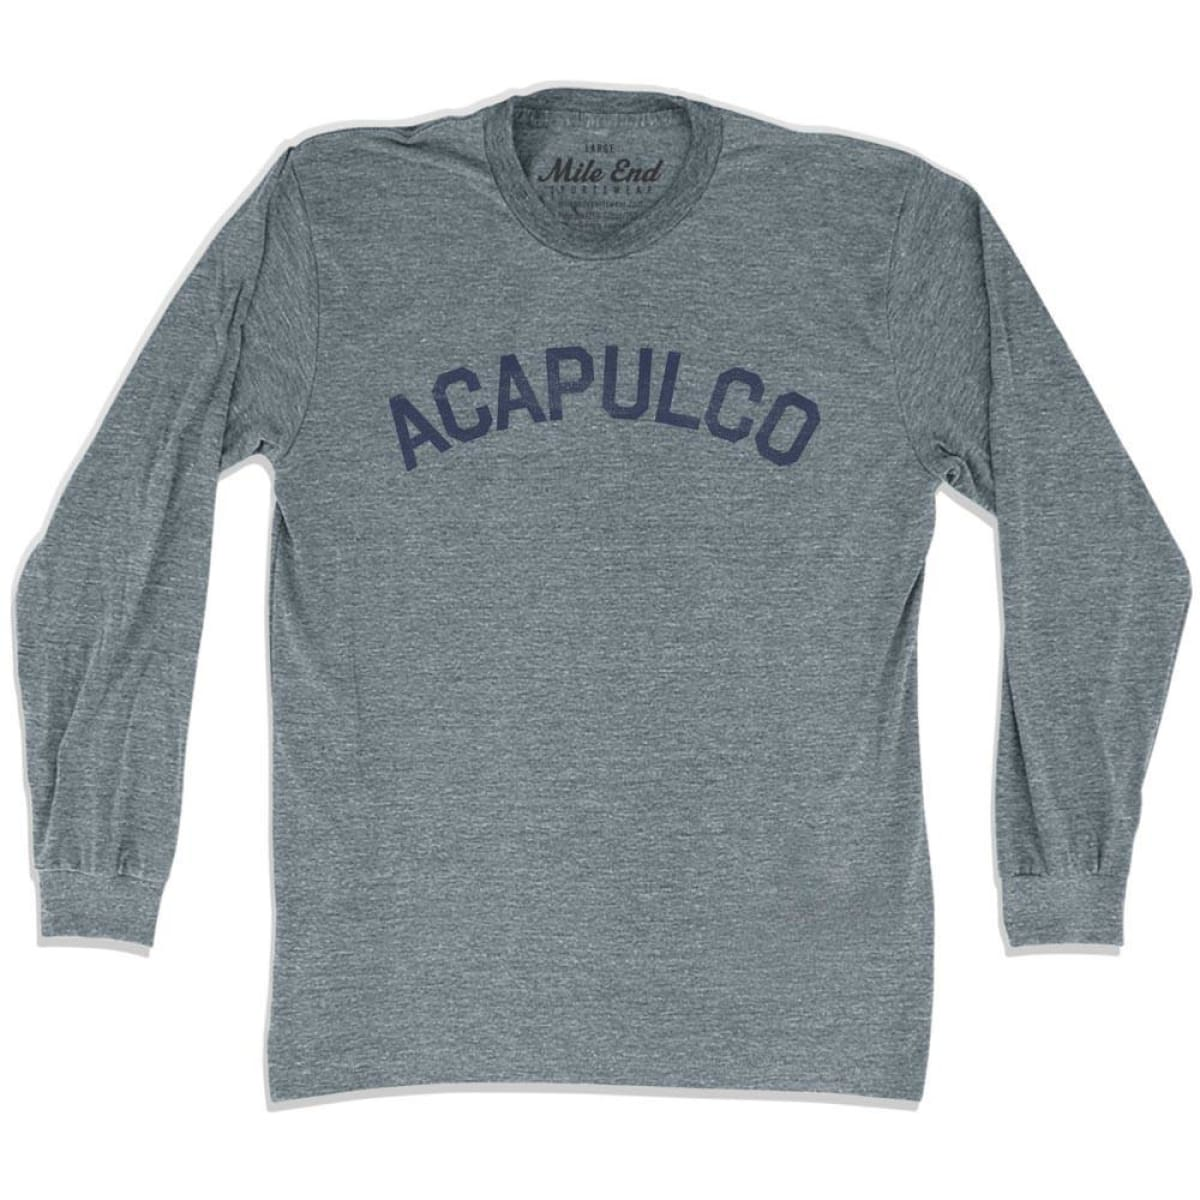 Acapulco City Vintage Long-Sleeve T-shirt - Athletic Grey / Adult Small - Mile End City